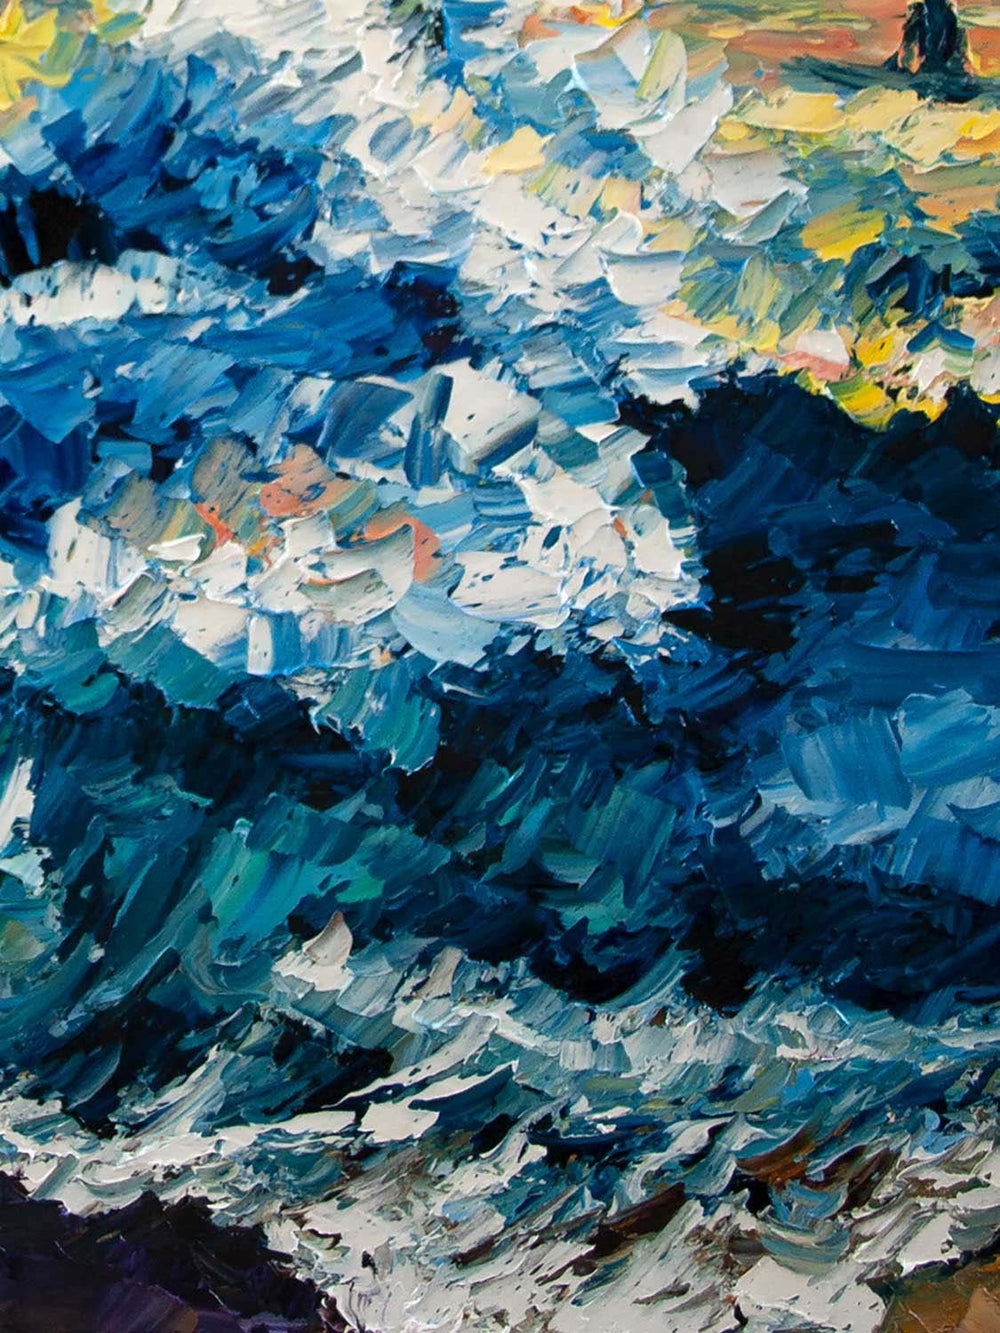 Sunset Wall Art with Turquoise Waves painted in Oil on Canvas